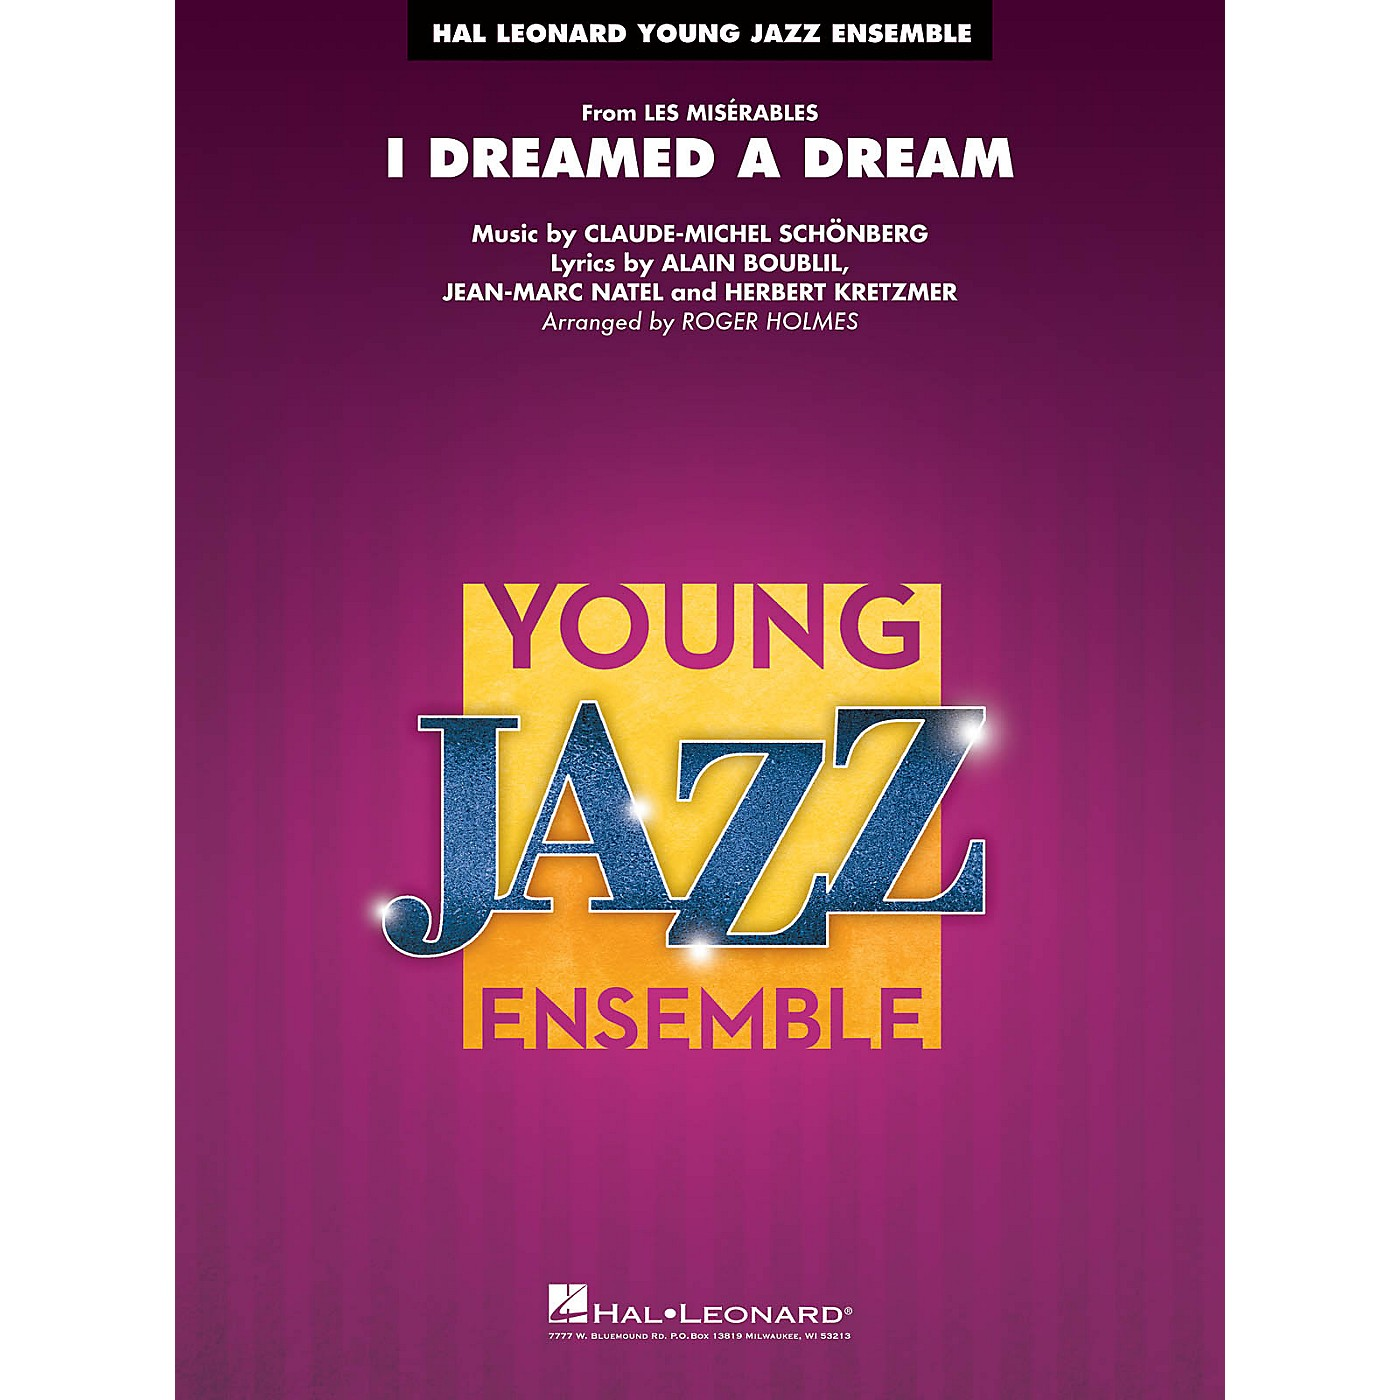 Hal Leonard I Dreamed a Dream (from Les Misérables) Jazz Band Level 3 Arranged by Roger Holmes thumbnail